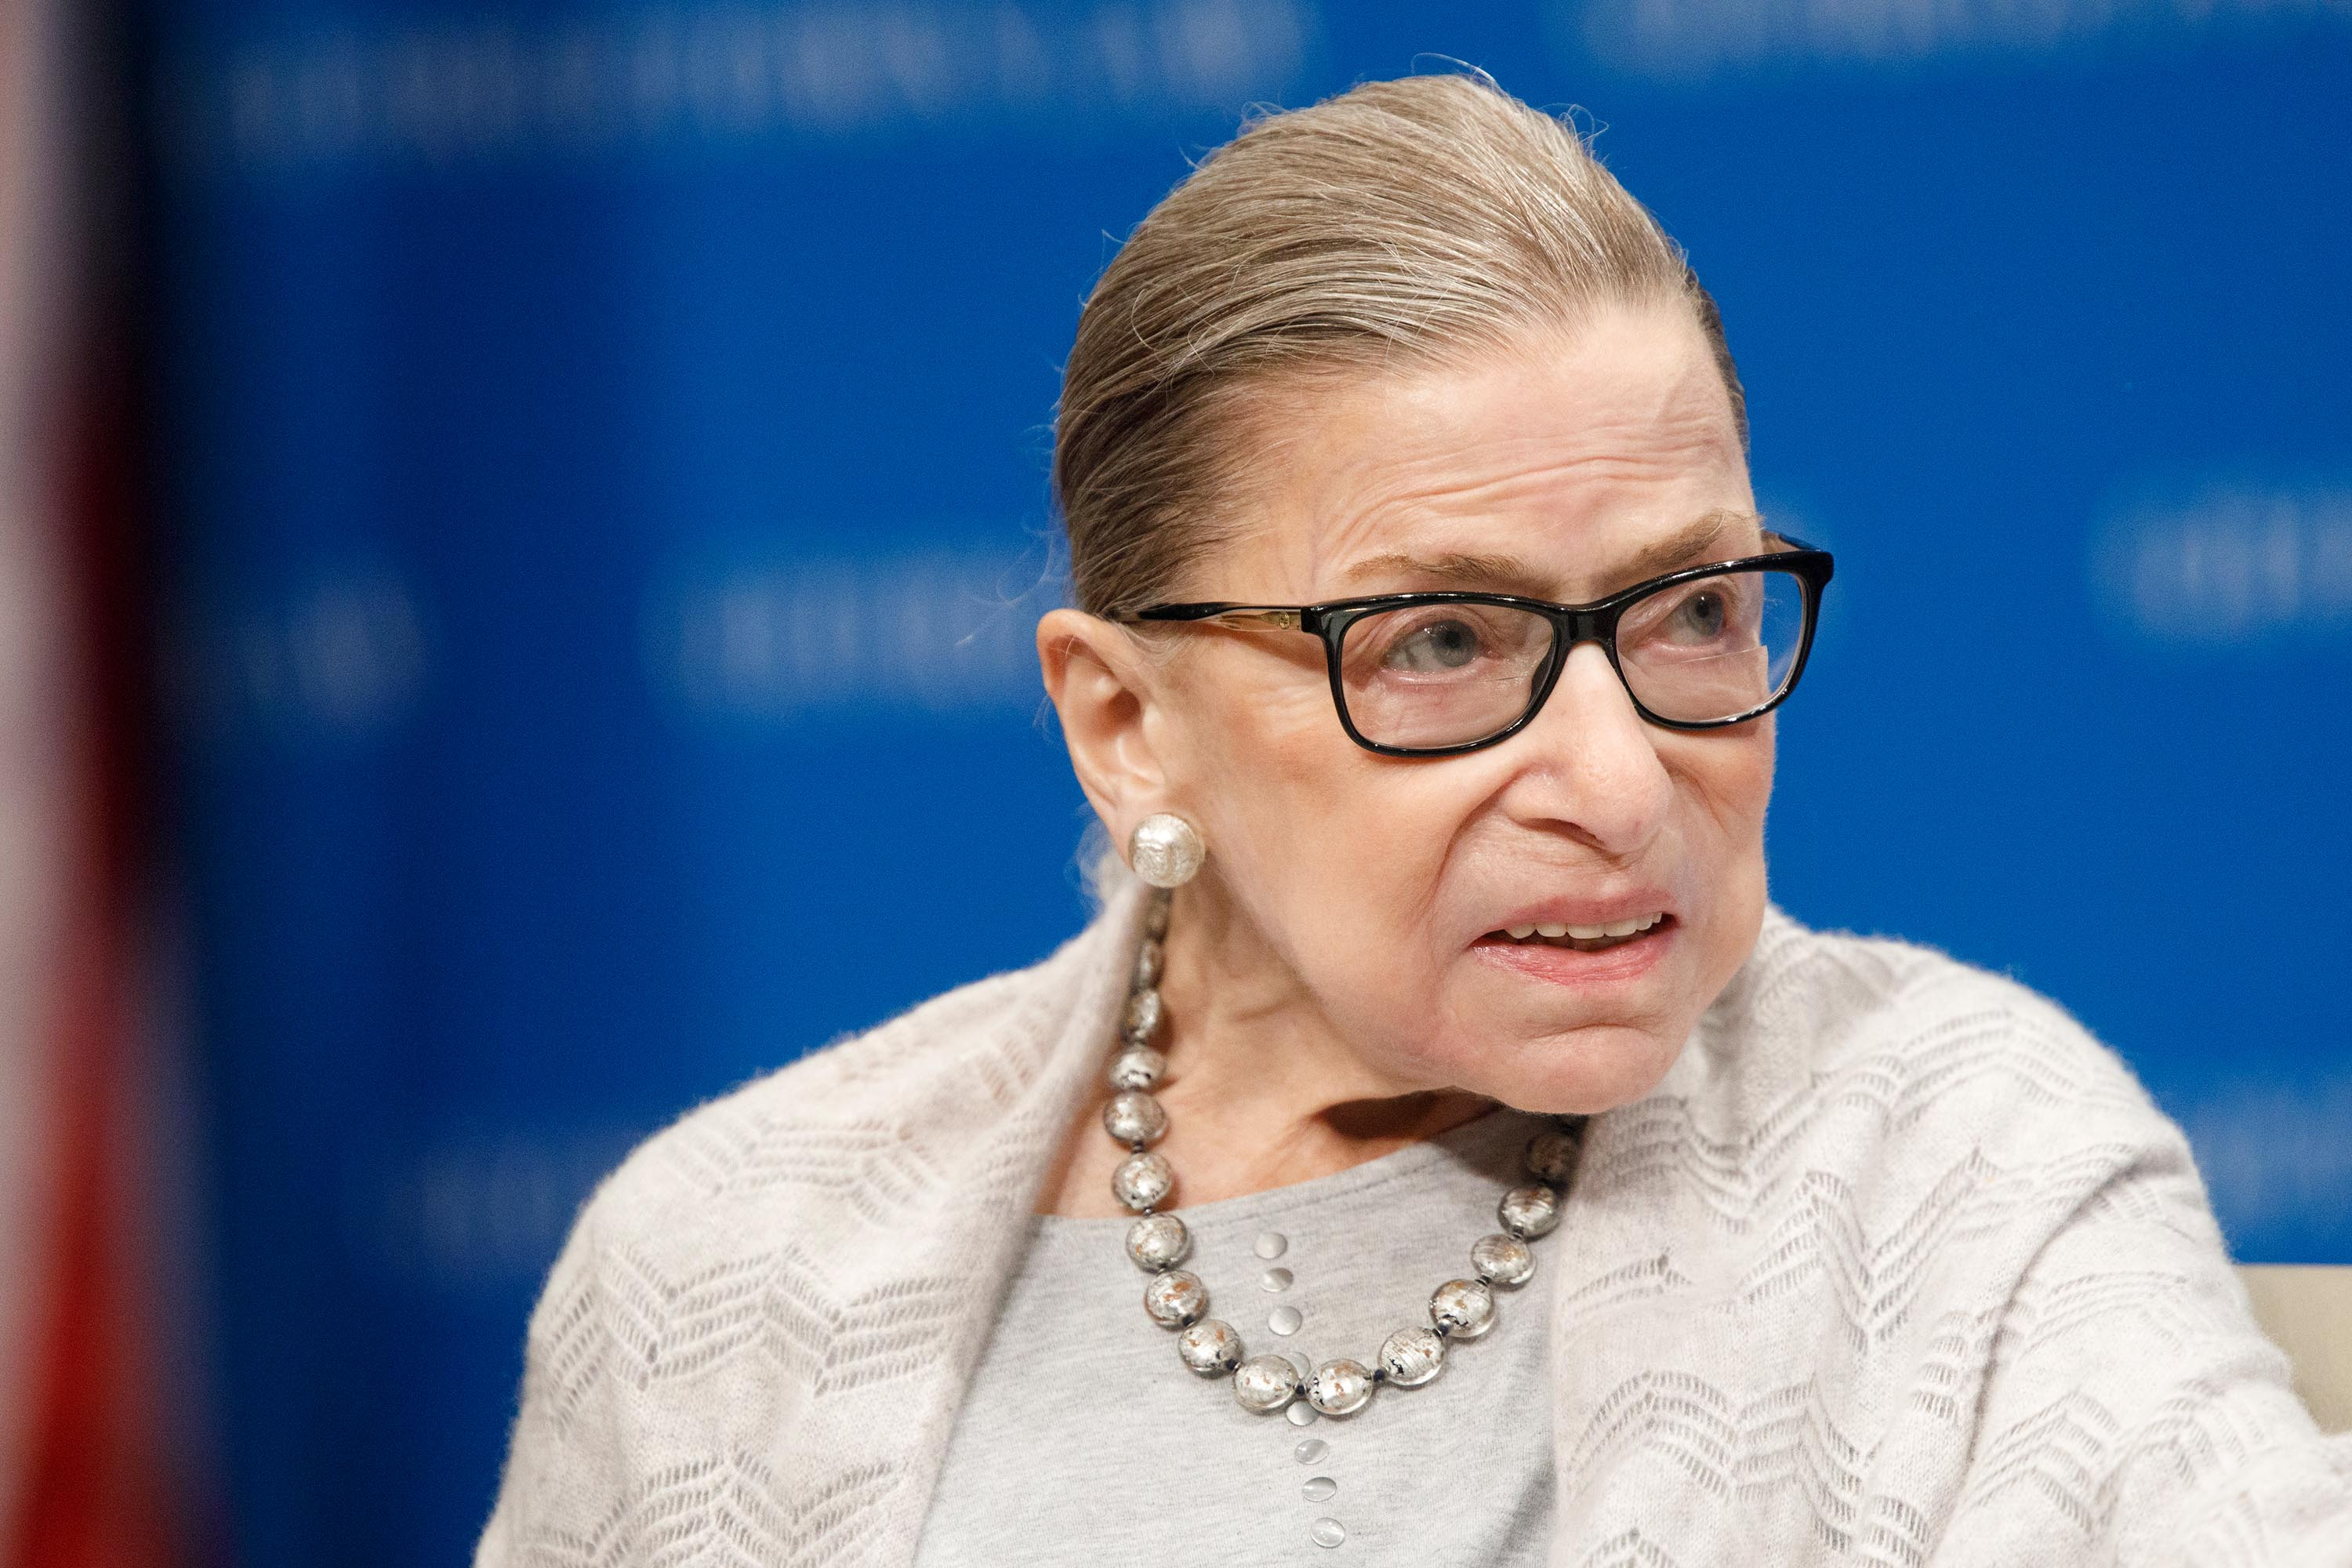 Justice Ruth Bader Ginsburg discharged from the hospital after latest medical procedure